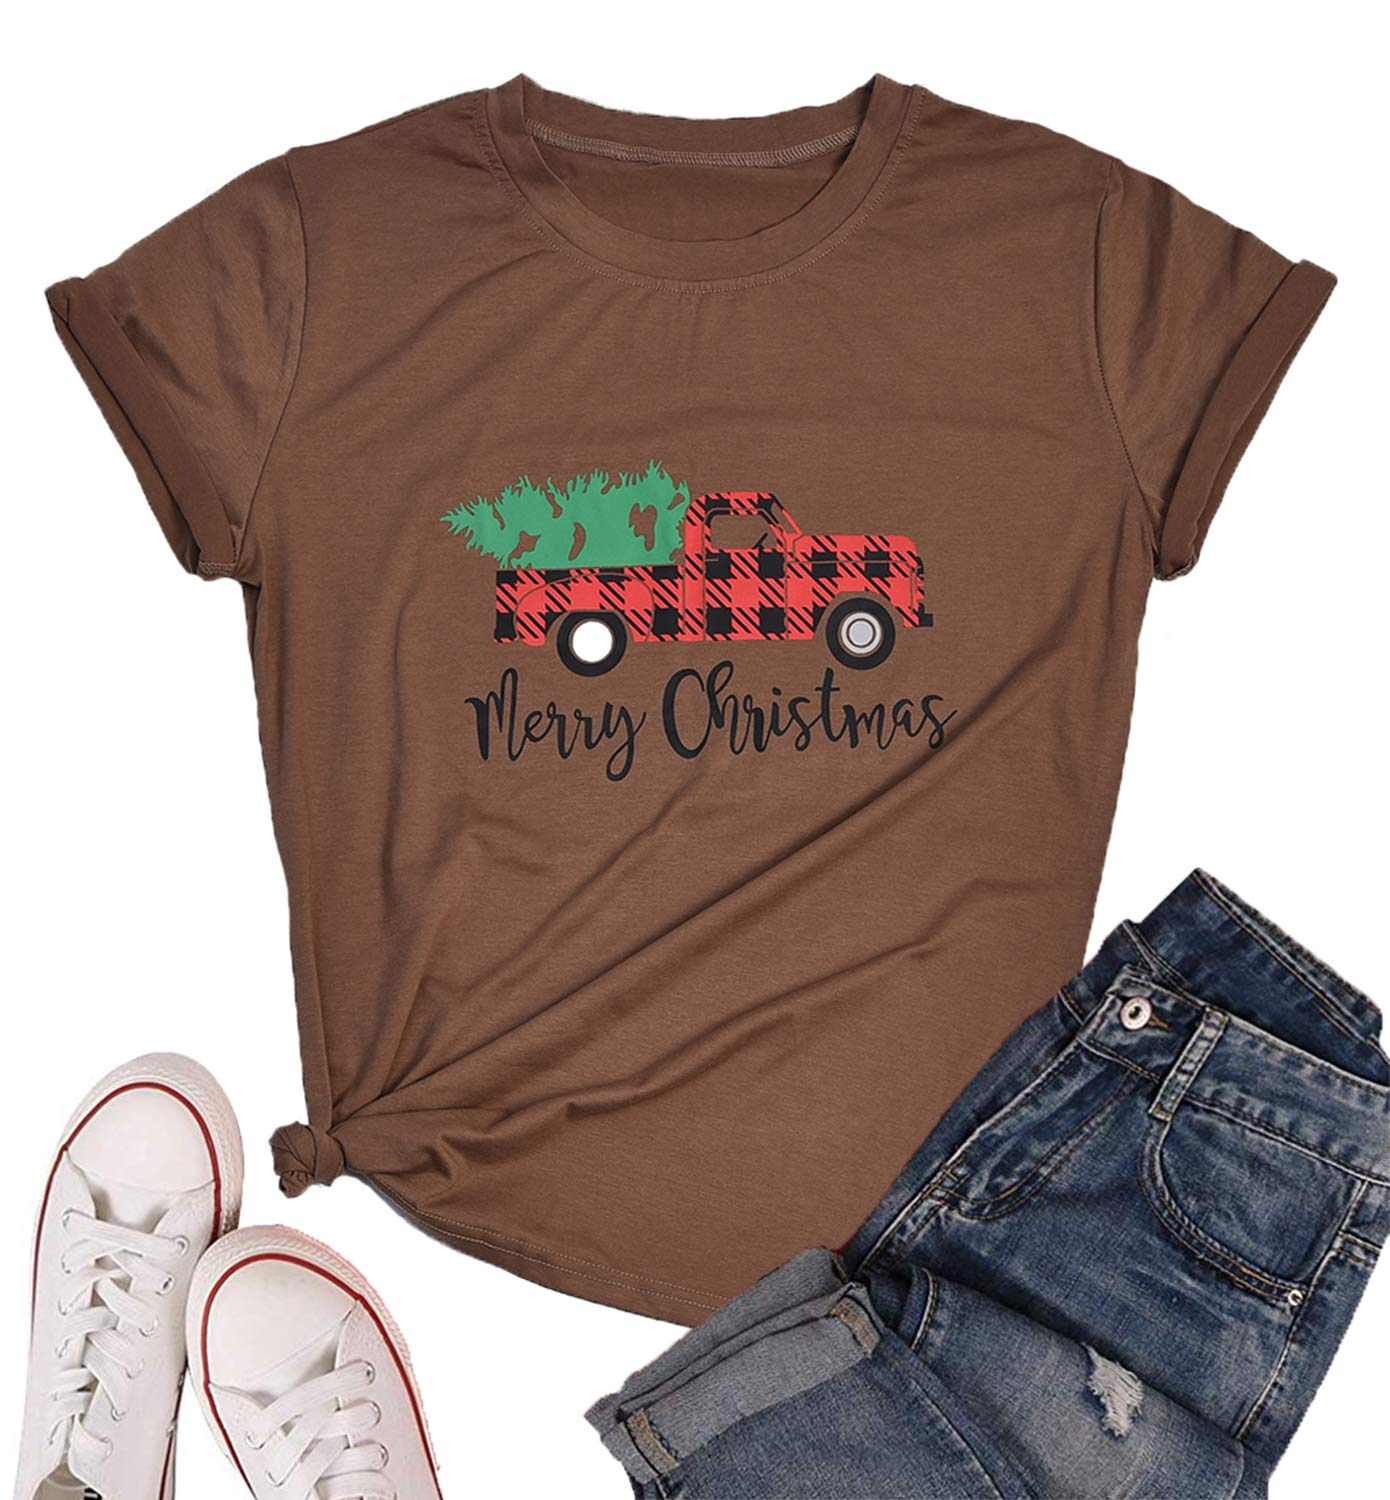 Eanklosco Merry Christmas T-Shirt Women's Casual Letter Tops Short Sleeve Shirts(Khaki,XXL